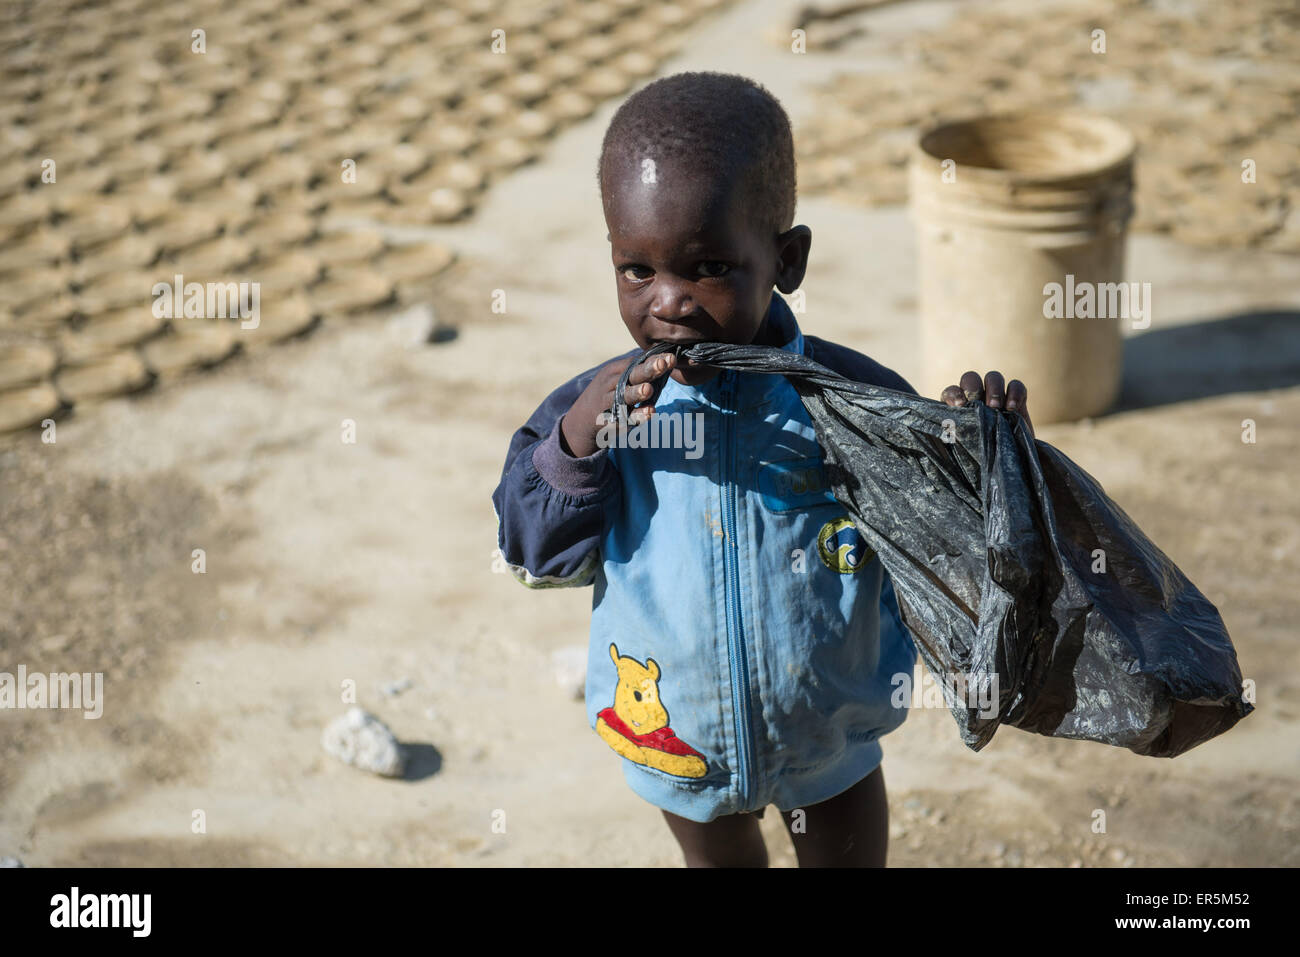 (150528) -- PORT AU PRINCE, May 28, 2015 (Xinhua) -- A boy bites a plastic bag in front of the mud cookies in the - Stock Image